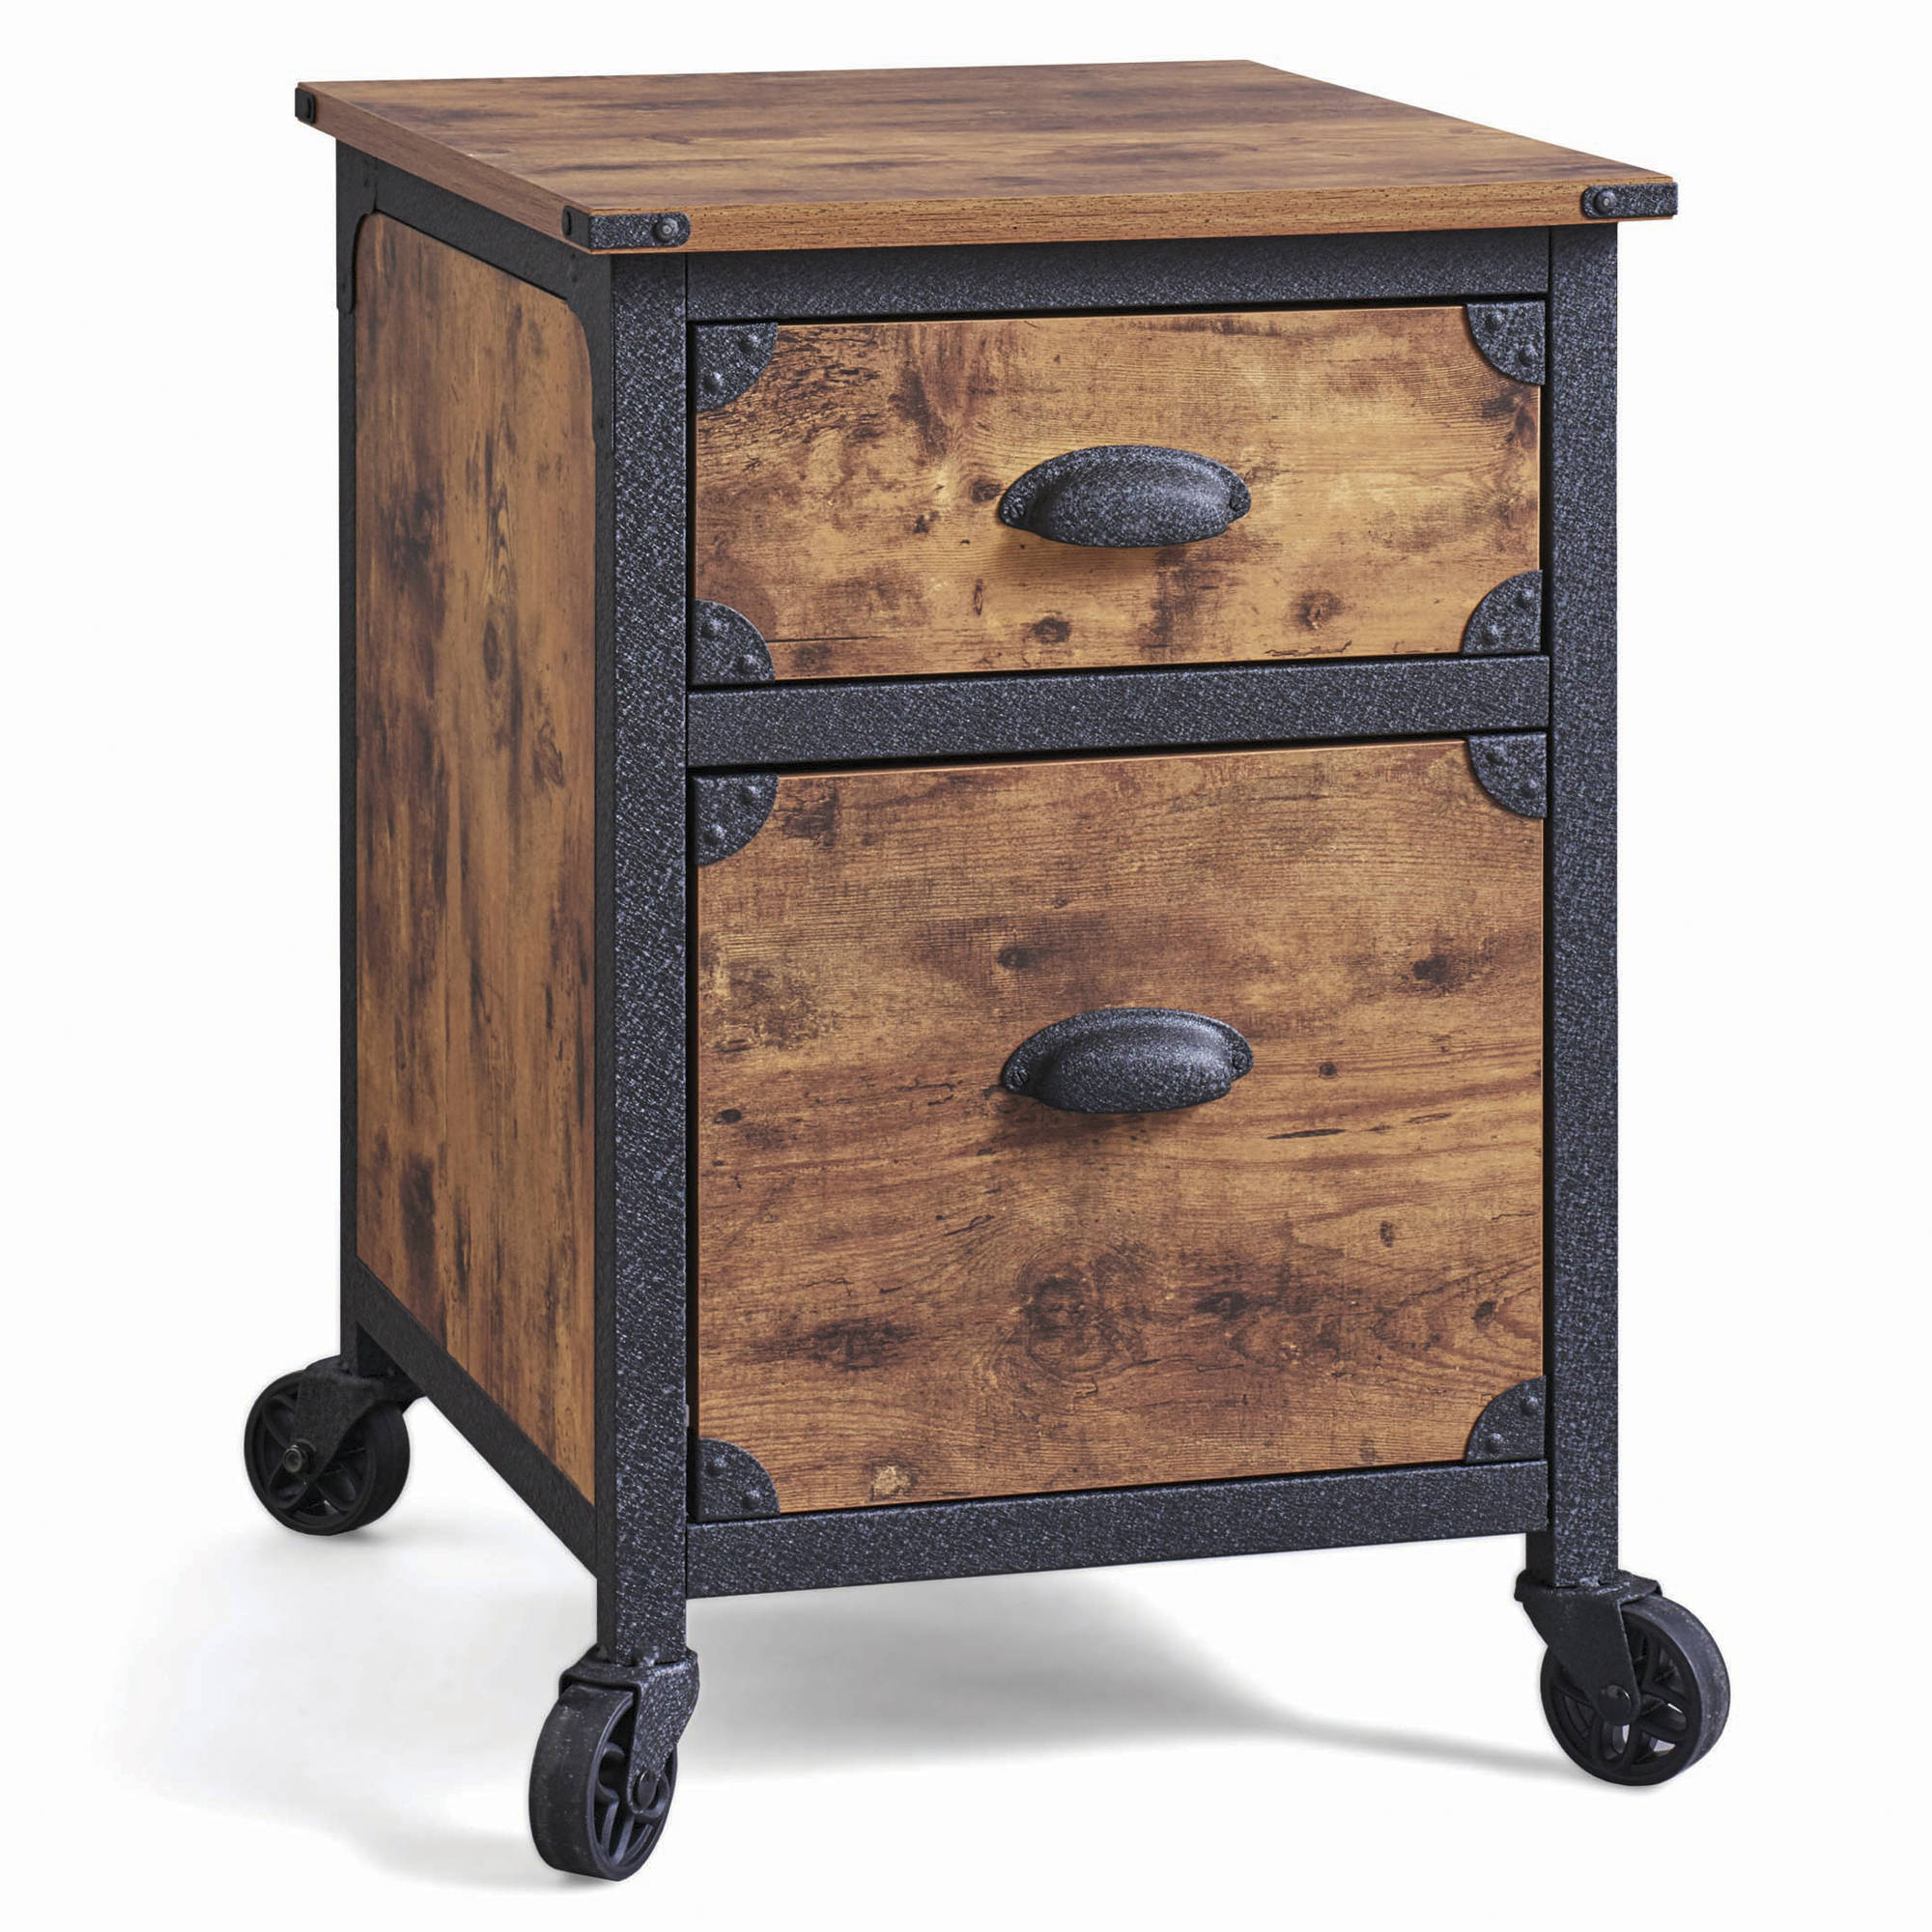 Better Homes and Gardens Rustic Country File Cabinet Weathered Pine